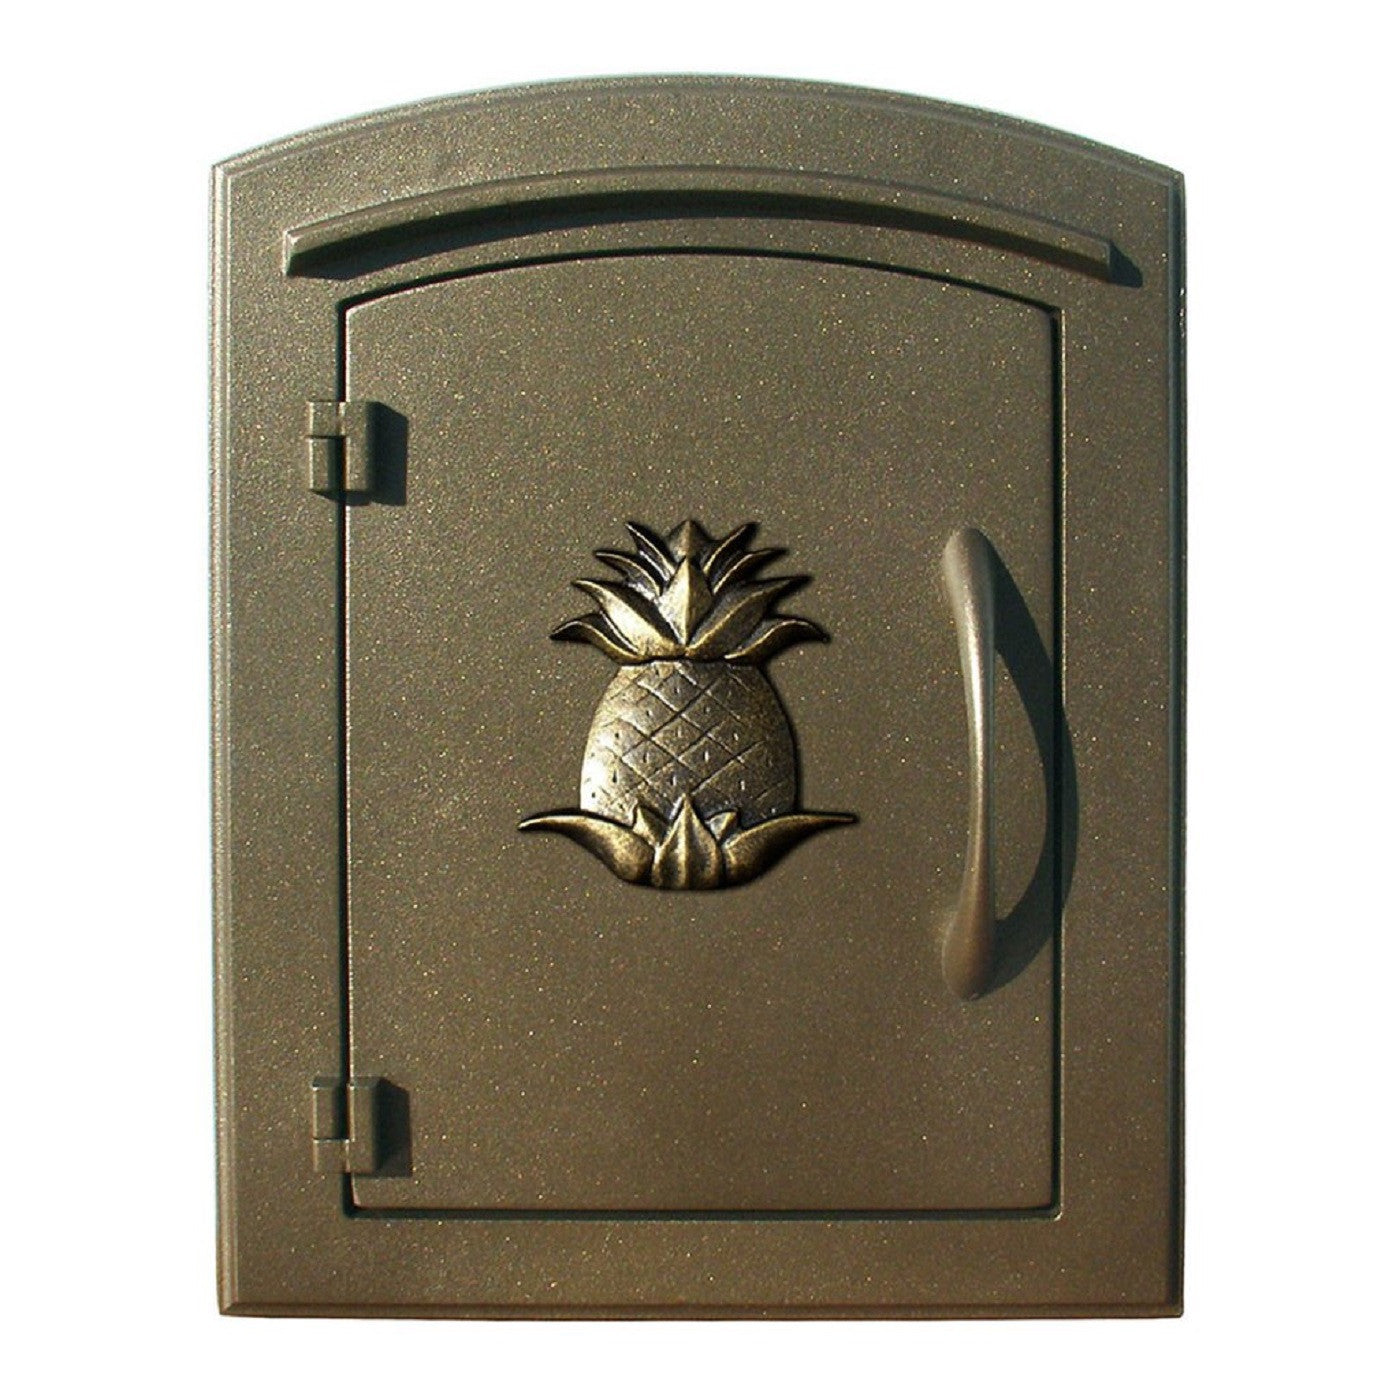 Qualarc Manchester Security Drop Chute Mailbox Decorative Pineapple Door  Logo Faceplate